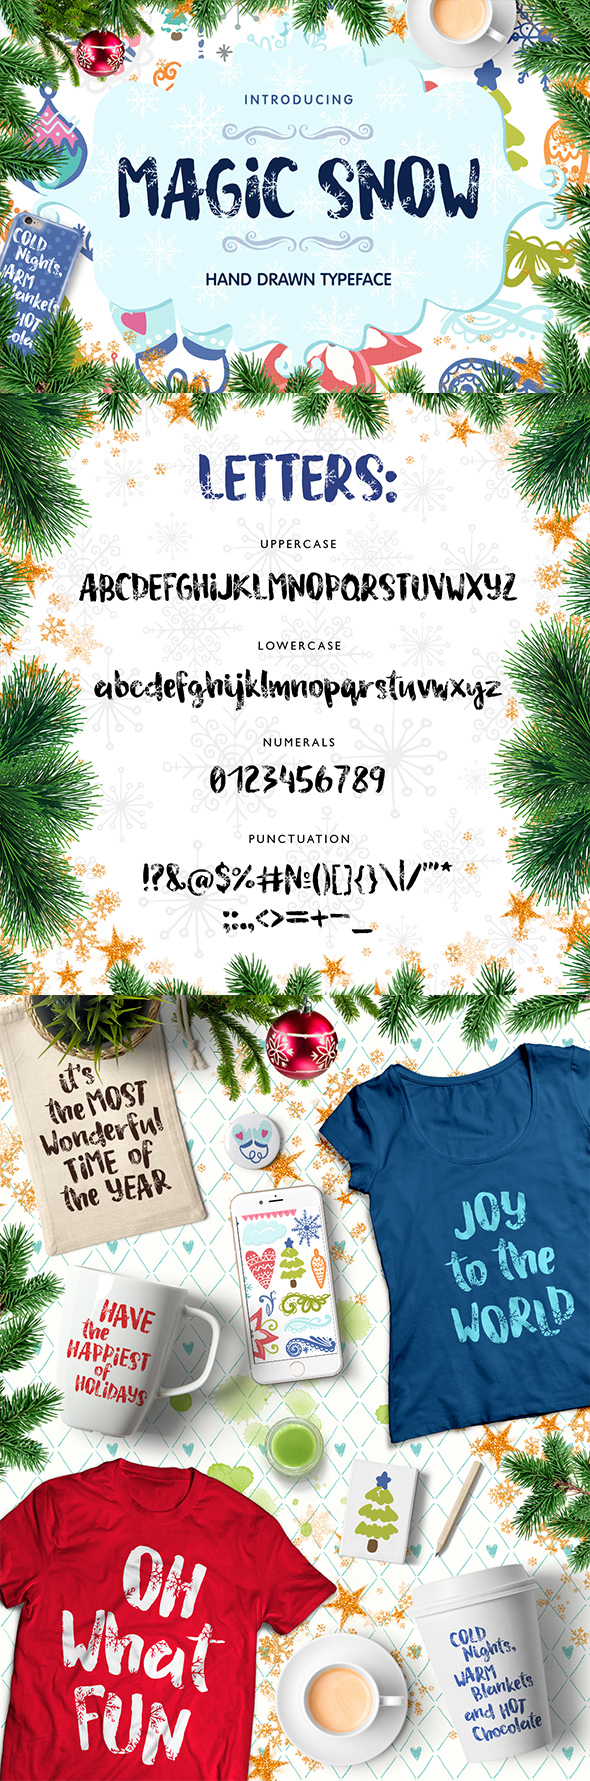 Magic Snow - Christmas Typefase - Handwriting Fonts